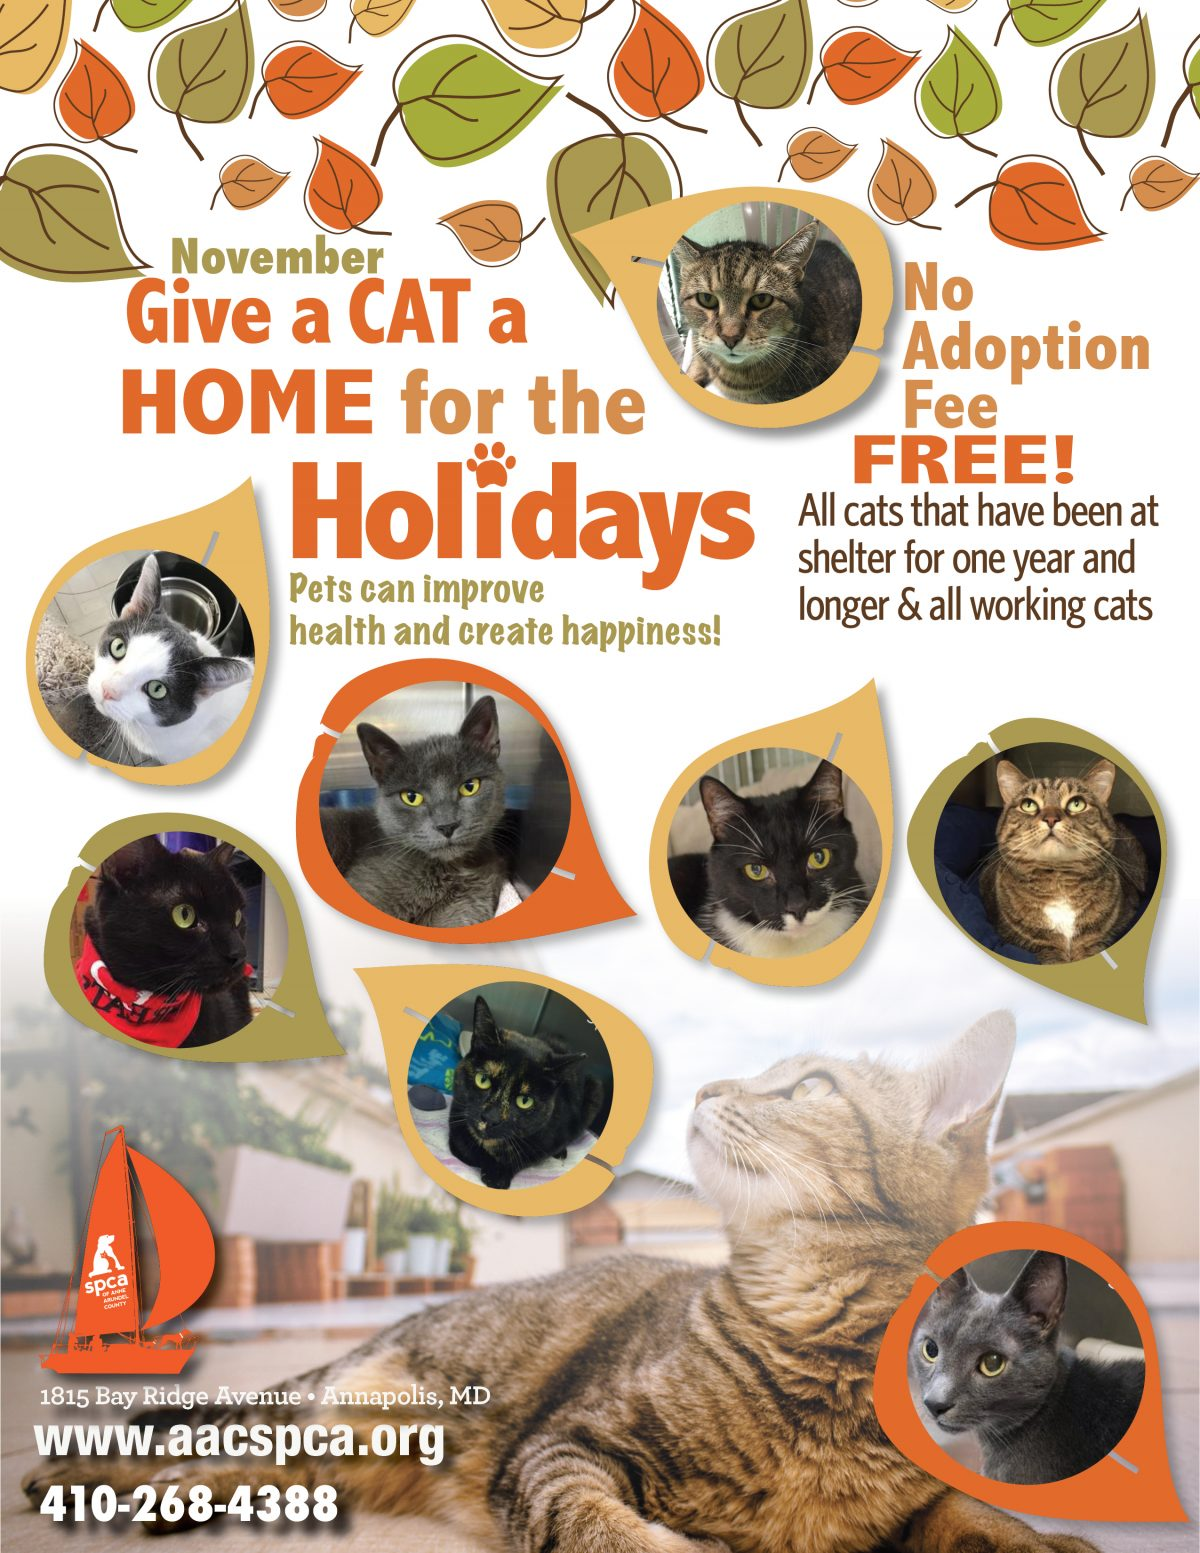 Cats – Home for the Holidays!